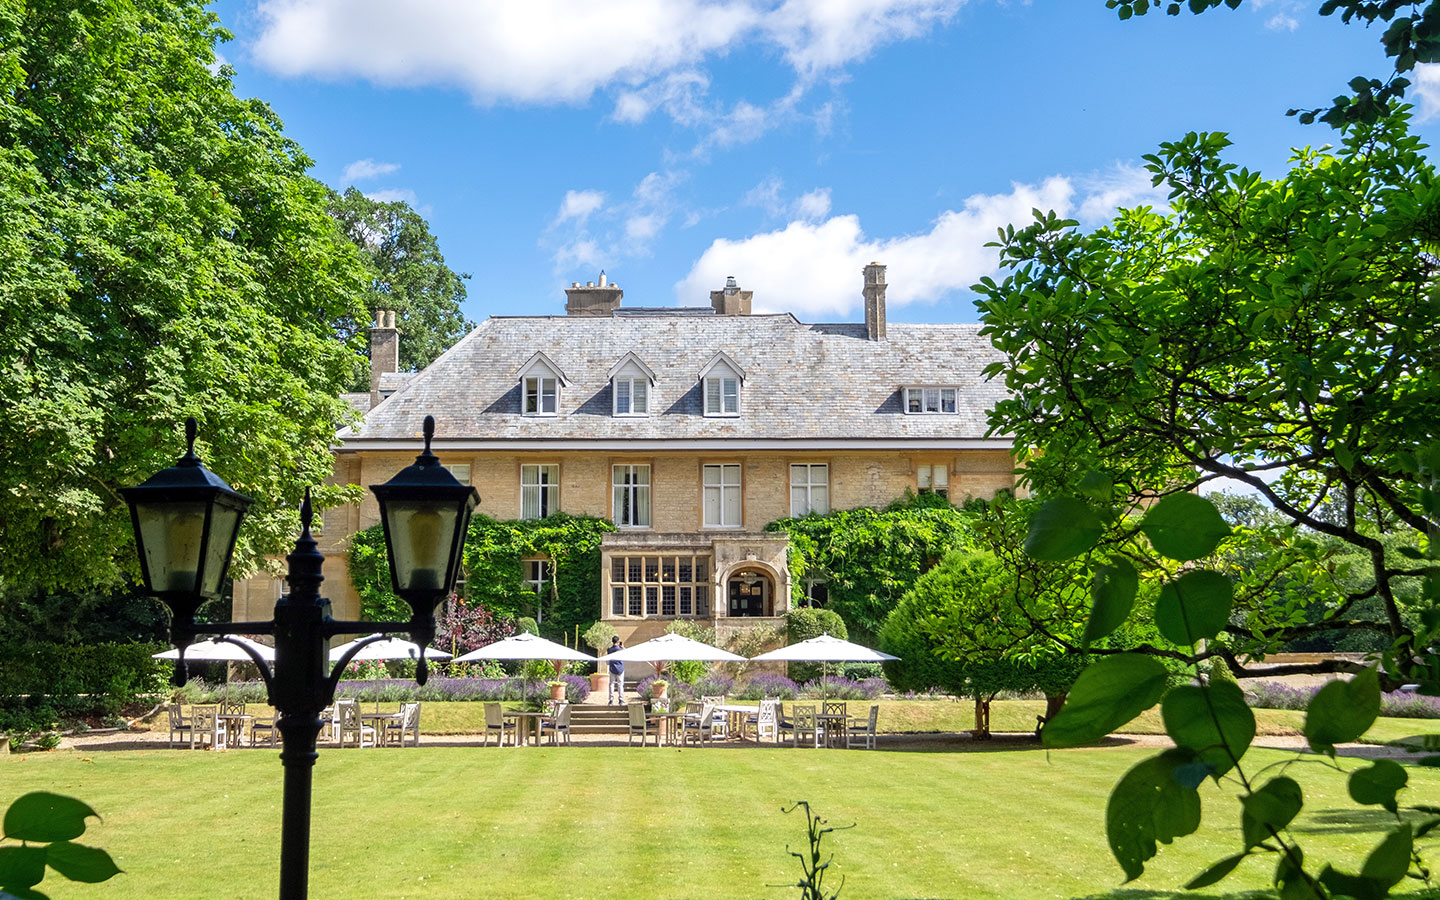 The Slaughters Manor House hotel and restaurant in the Cotswolds